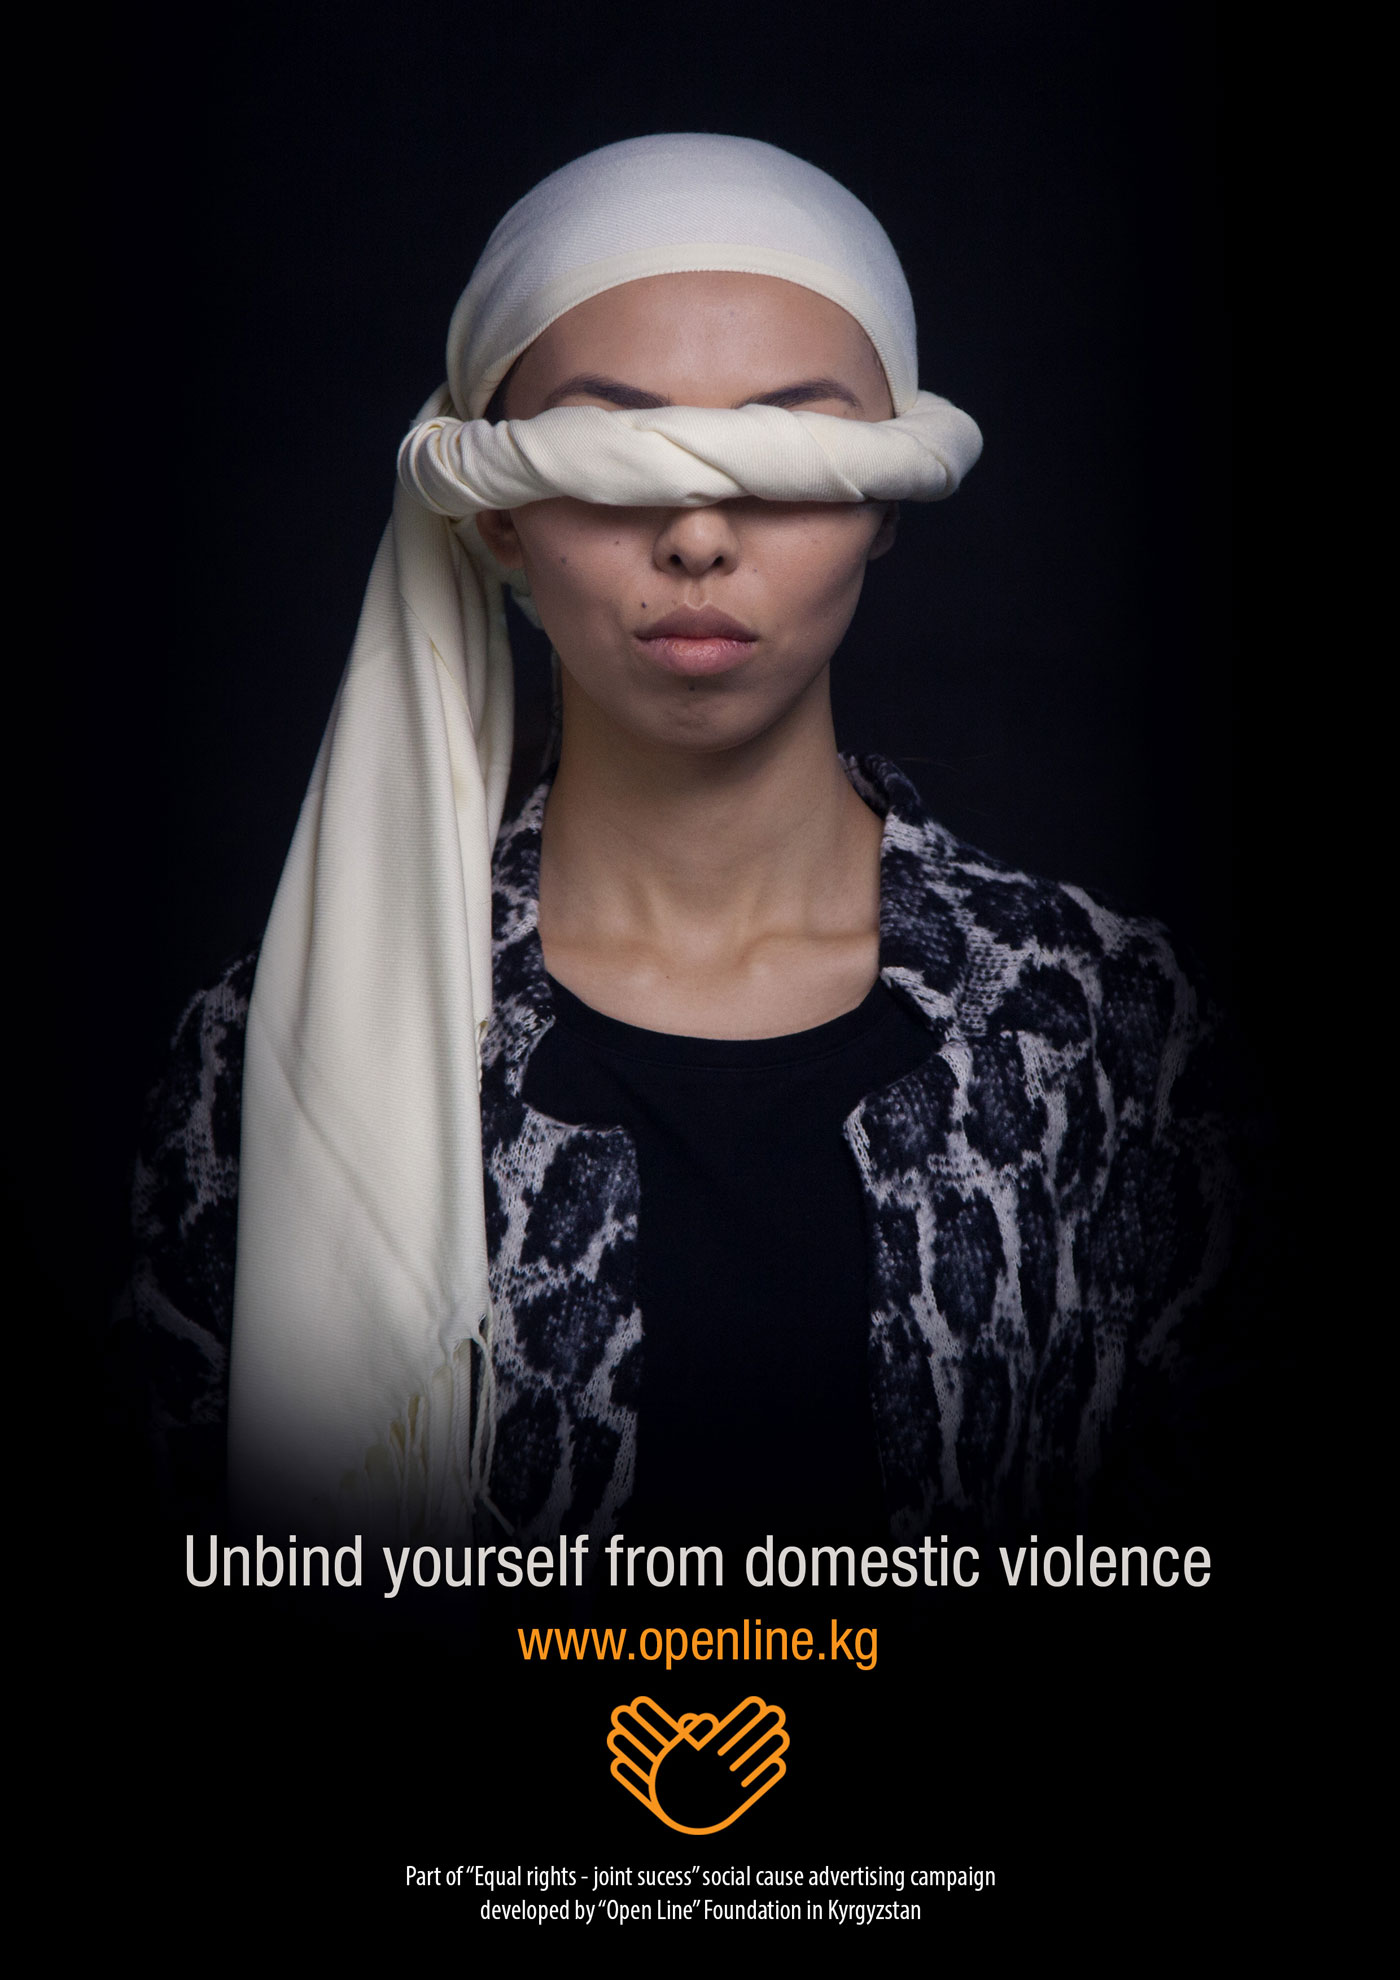 kyrgyz women unbind themselves from domestic violence